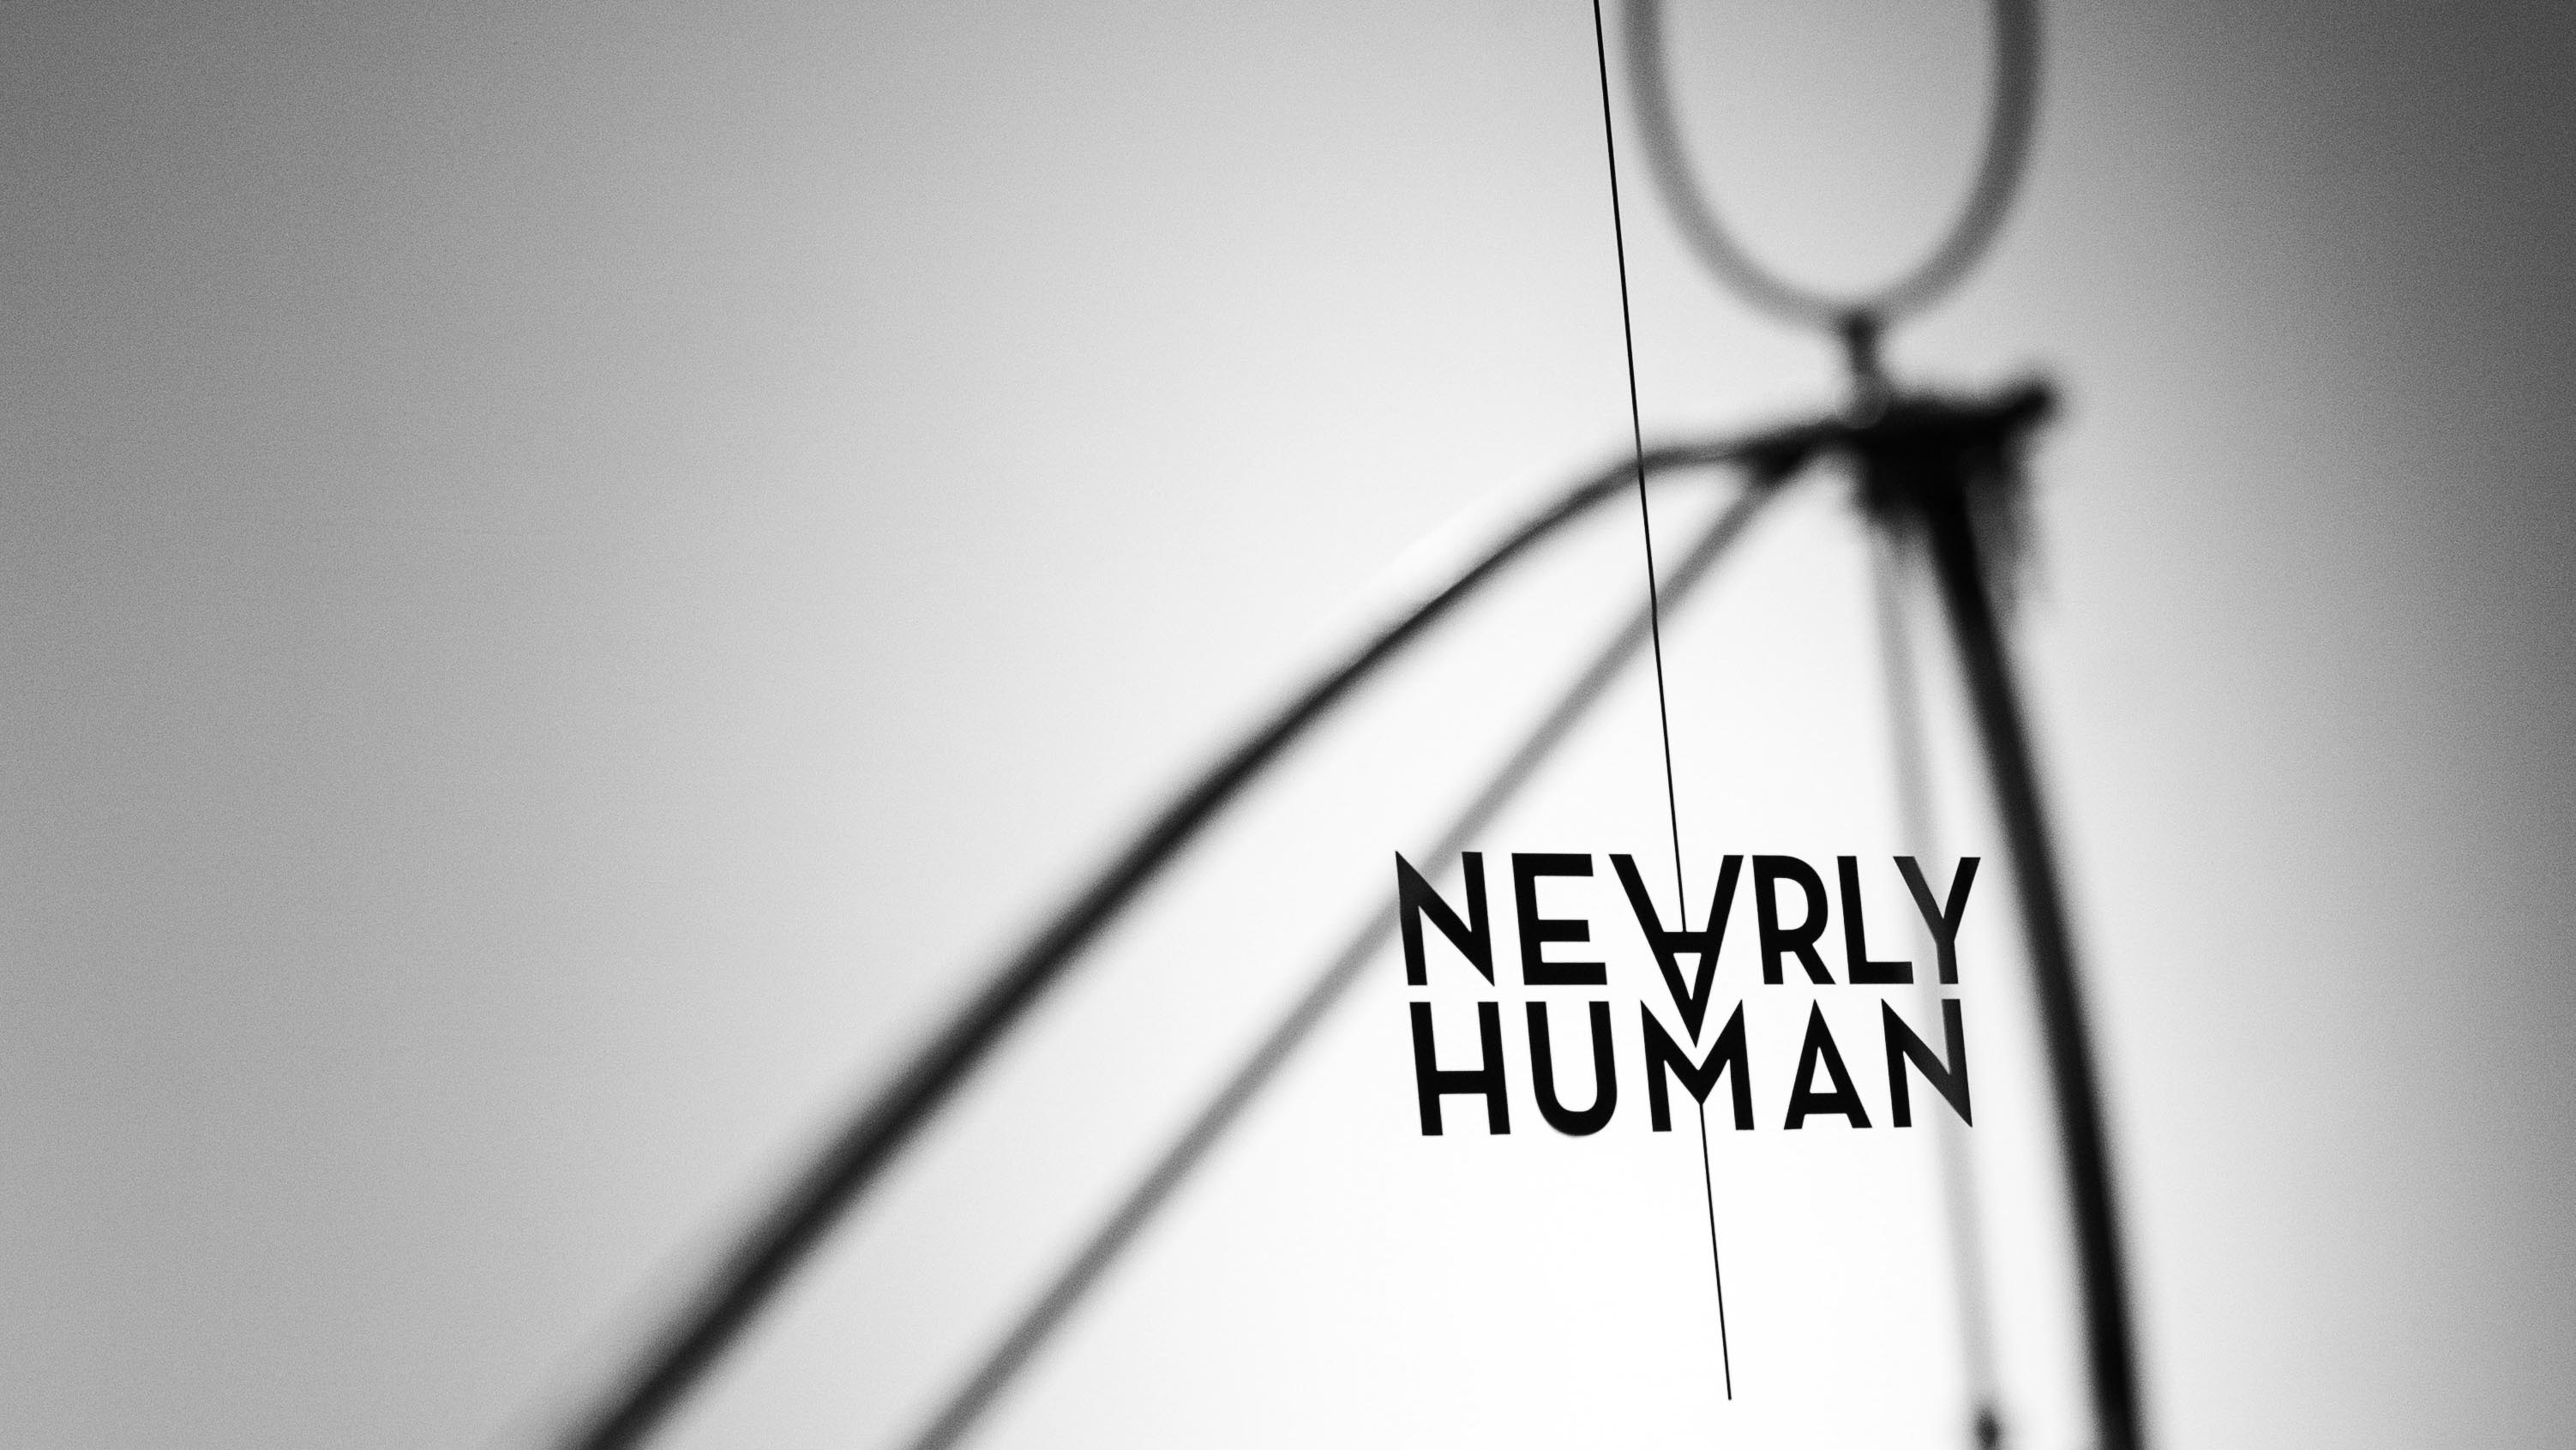 Nearly Human @ Kunsthal Grenland